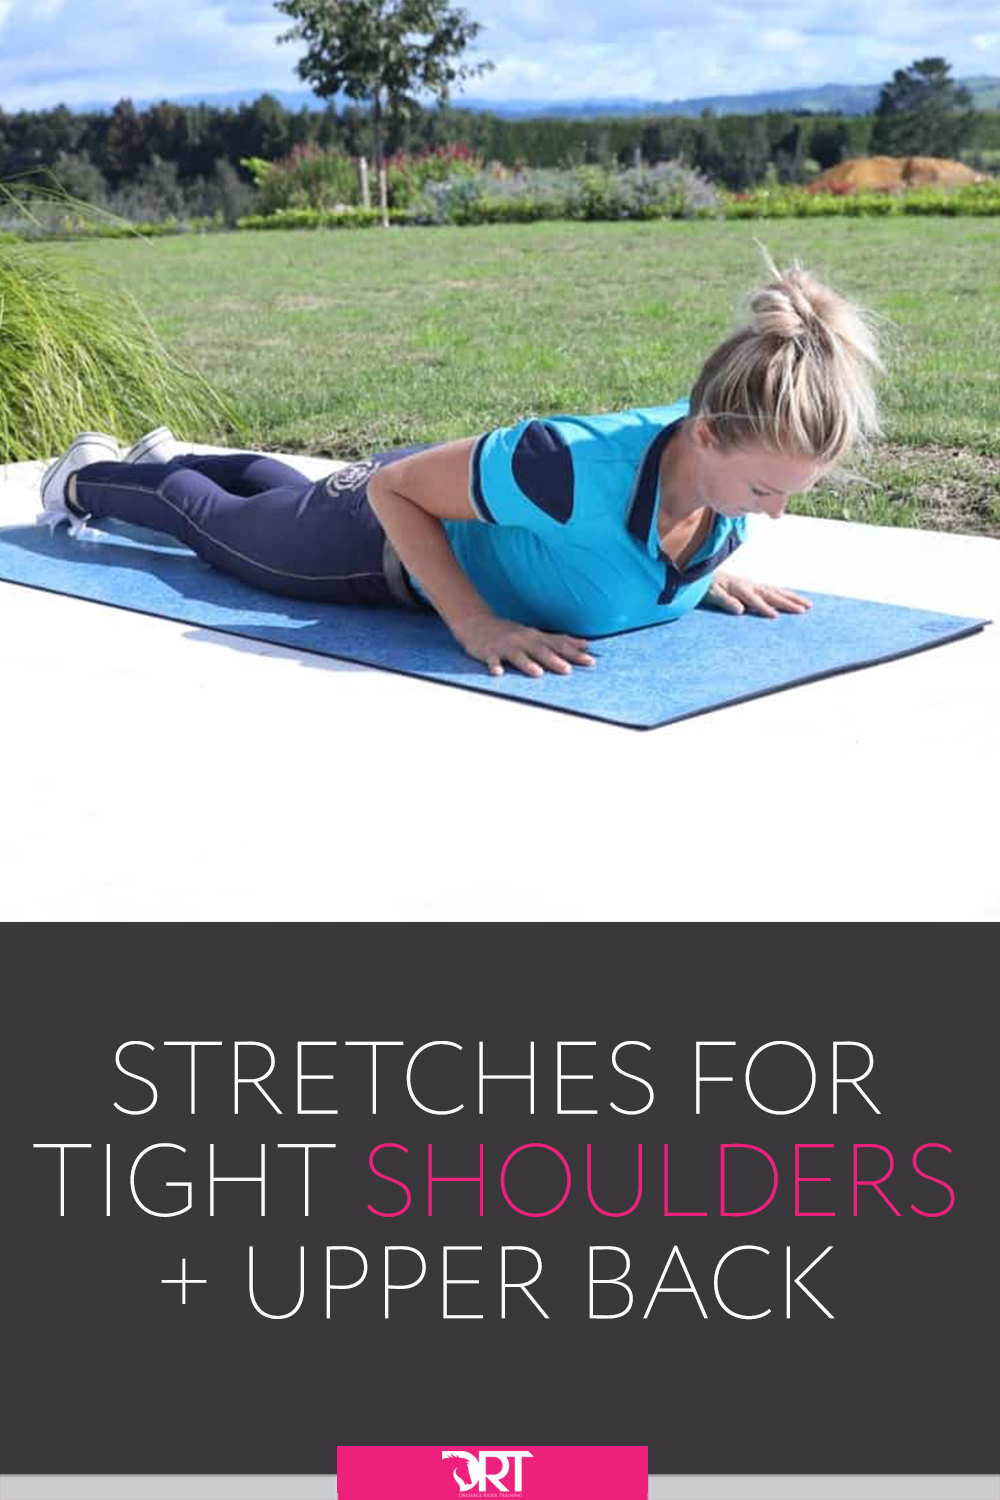 Stretches to help improve your upper body posture and allieviate tension. Including video demonstrating each exercise. #dressage #dressagerider #dressagetraining